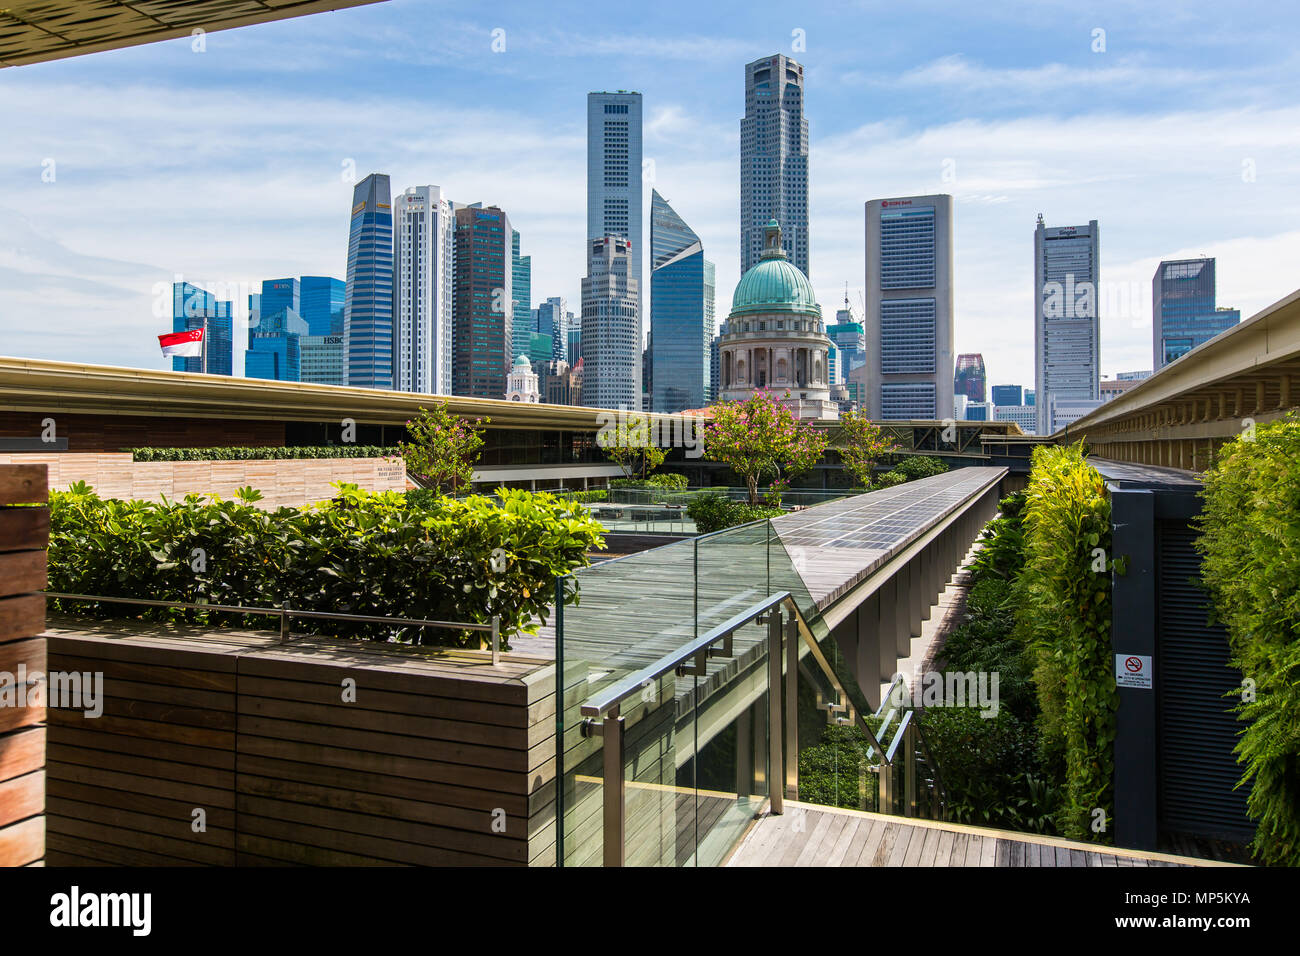 View of Singapore modern skyscrapers blend with the roof top of National Gallery Singapore Stock Photo